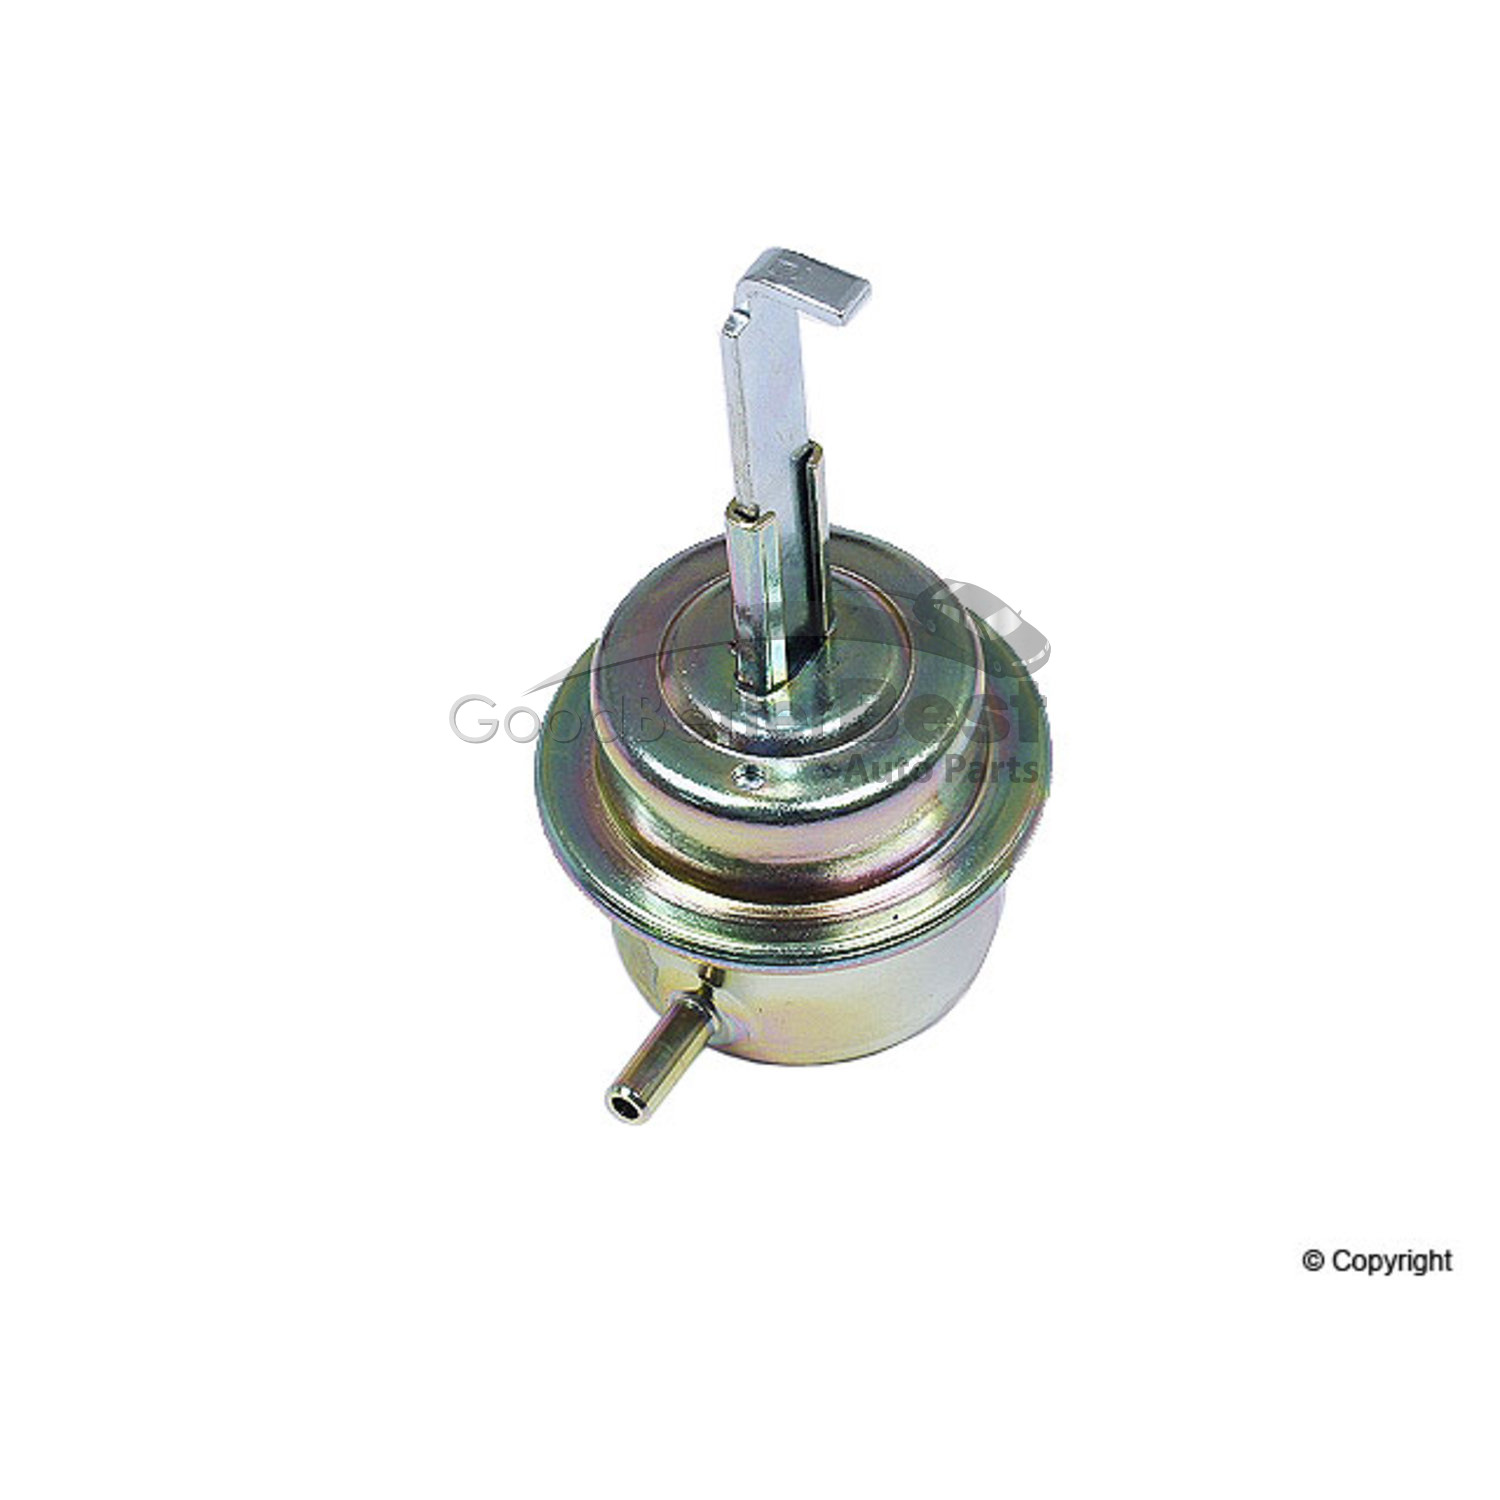 QUICK SILVER OEM SCREW         PART NUMBER 10-36070